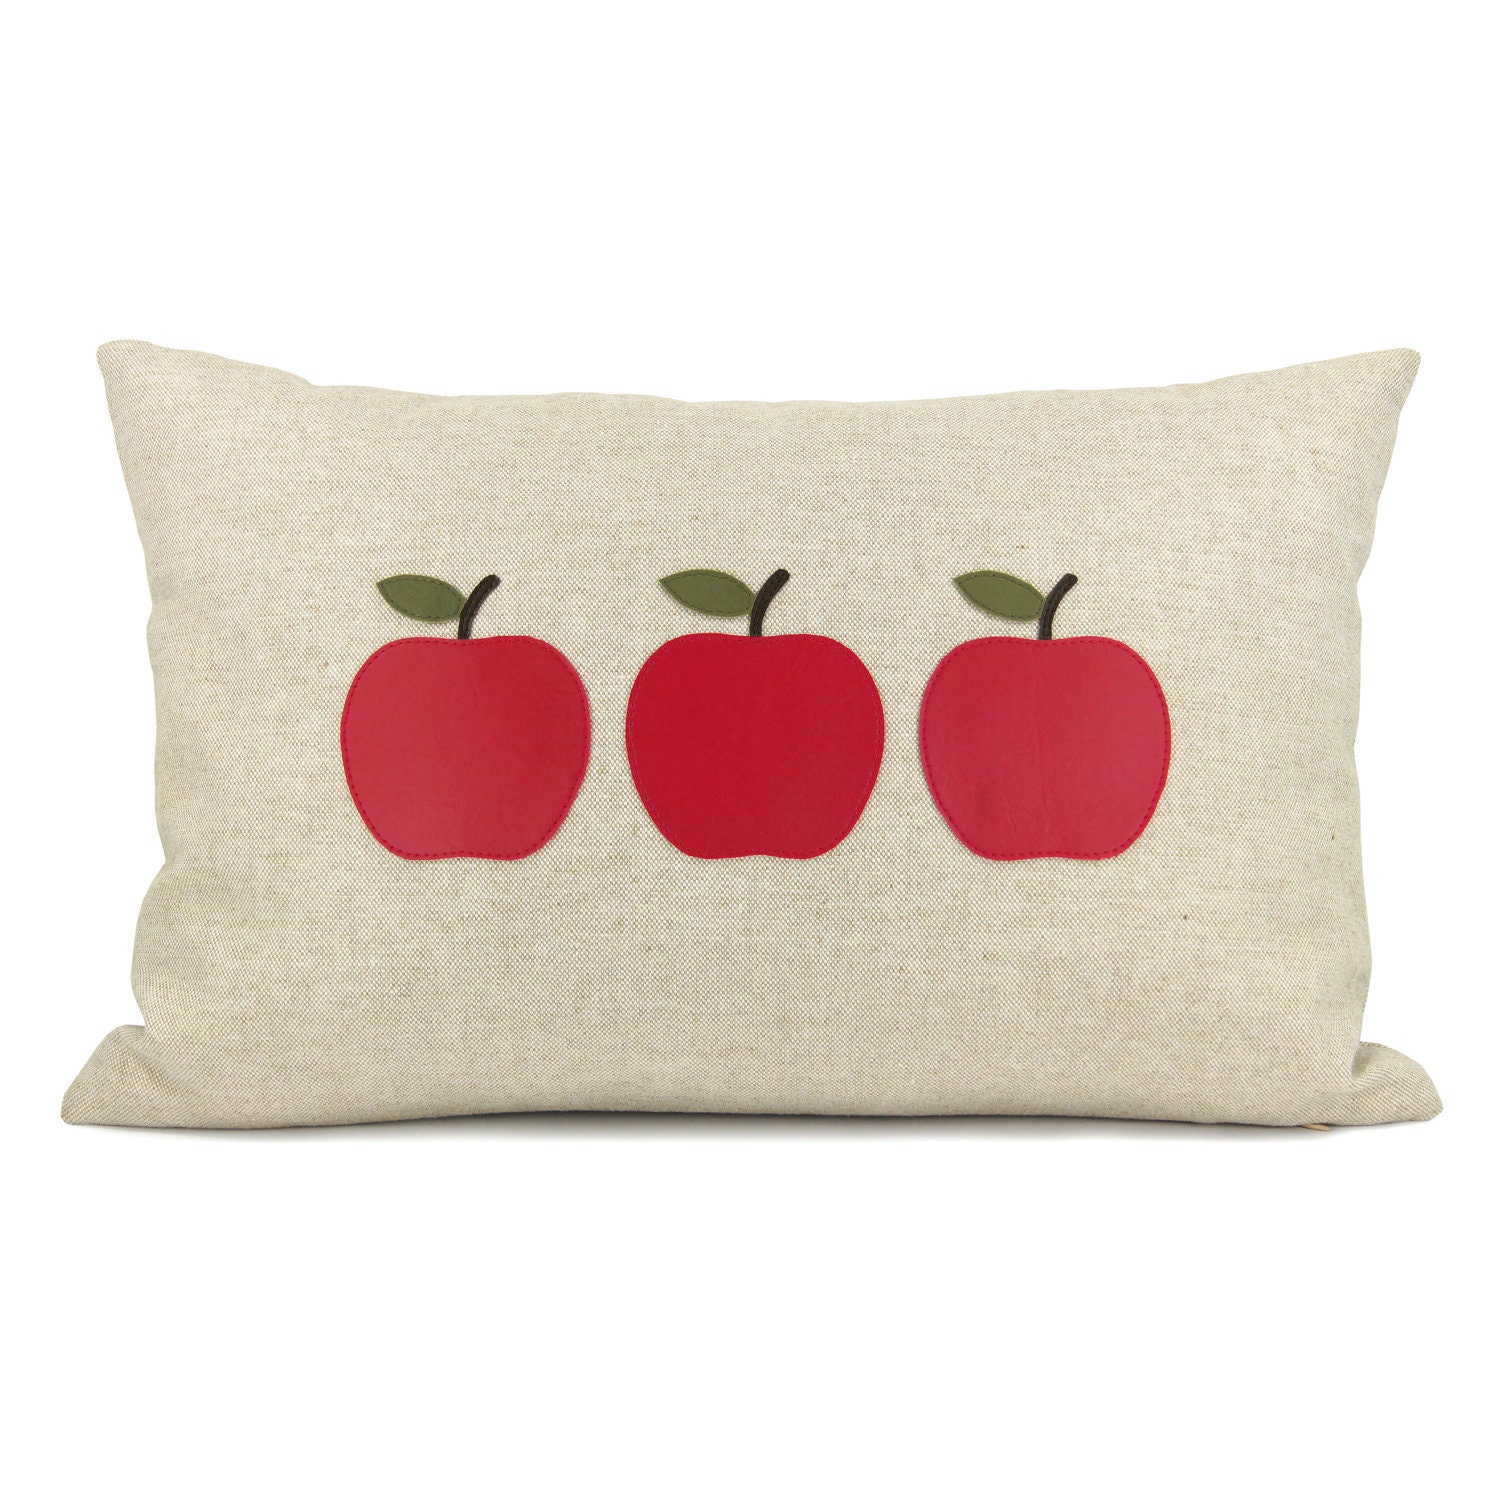 Personalized pillow case - Red or green apple appliques on your choice of fabric - 12x18 or 16x16 decorative pillow cover - ClassicByNature